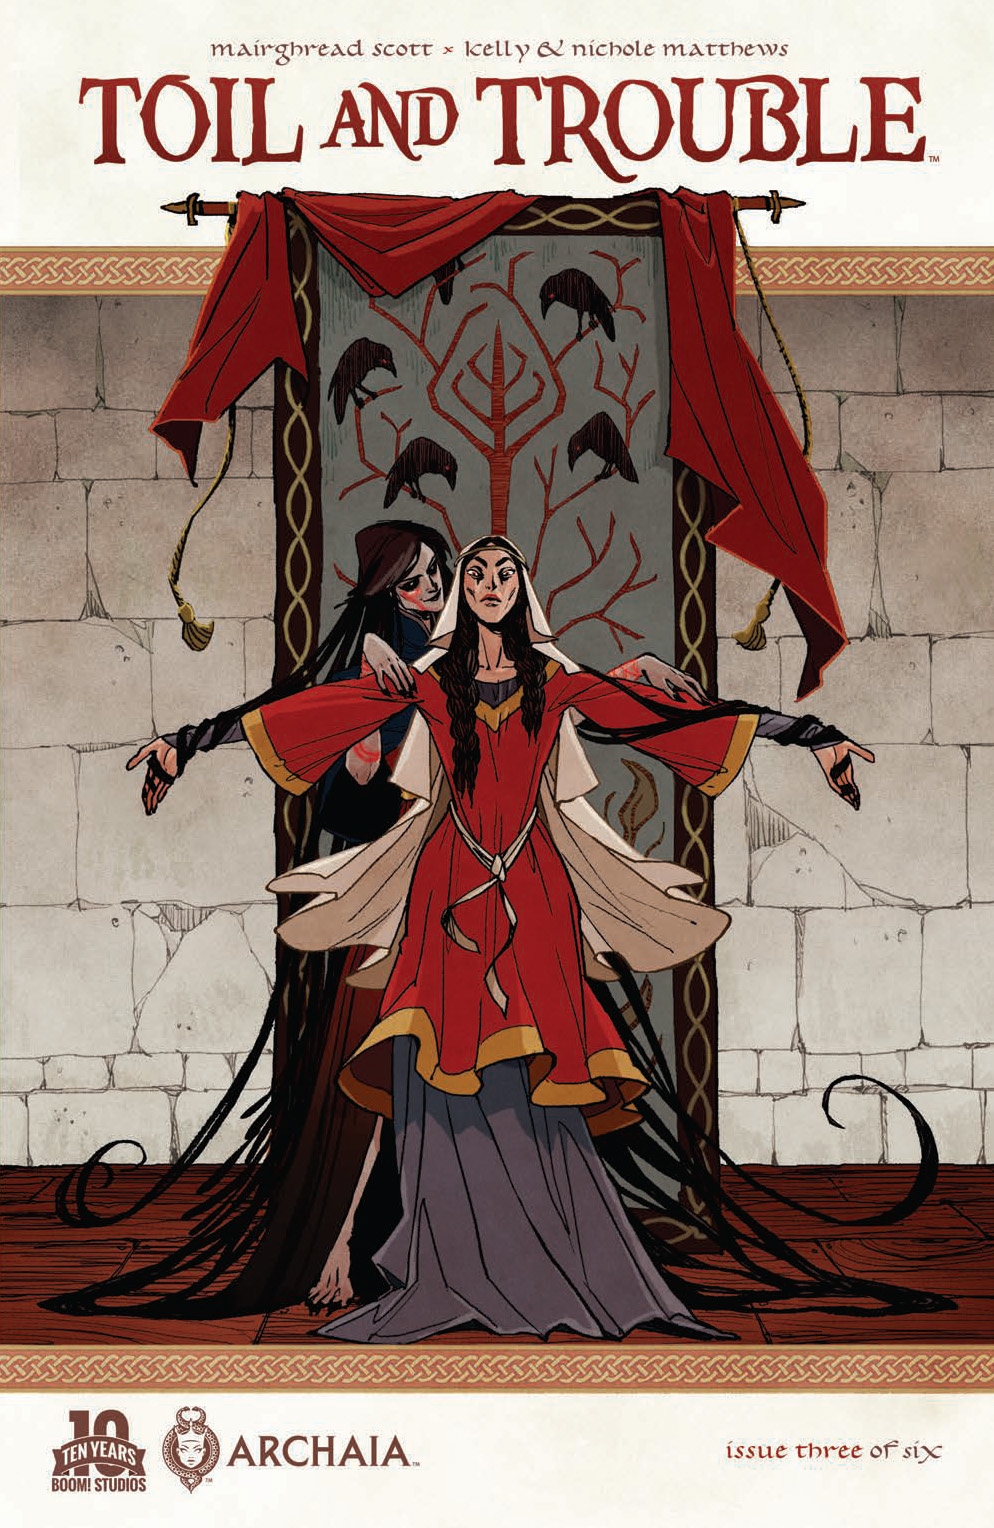 Cover to issue #3. The covers all have dynamic and striking artwork.